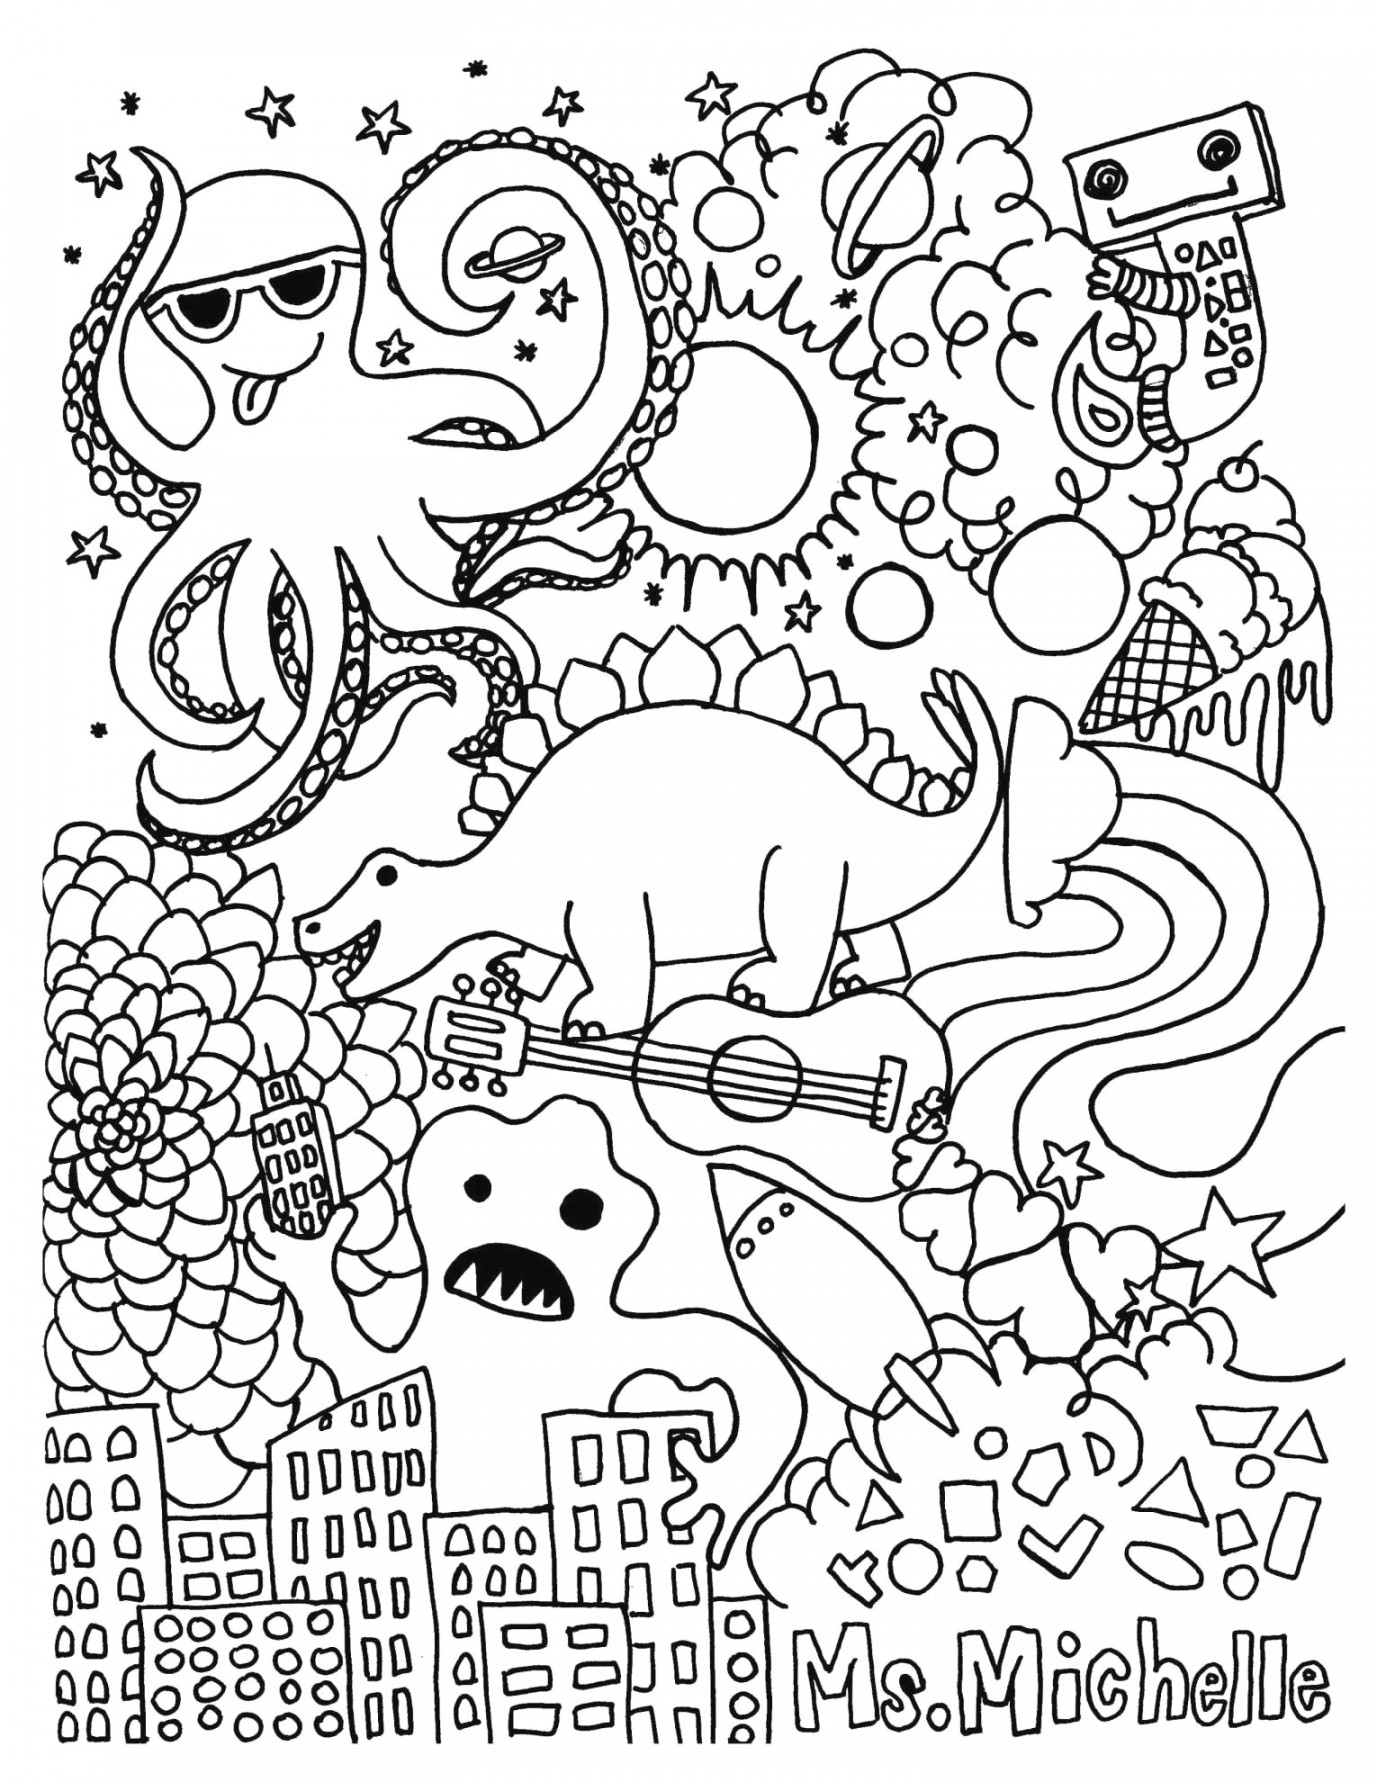 9 11 Coloring Pages 911 Coloring Pages Collections Of 9 11 Coloring Pages Cool S